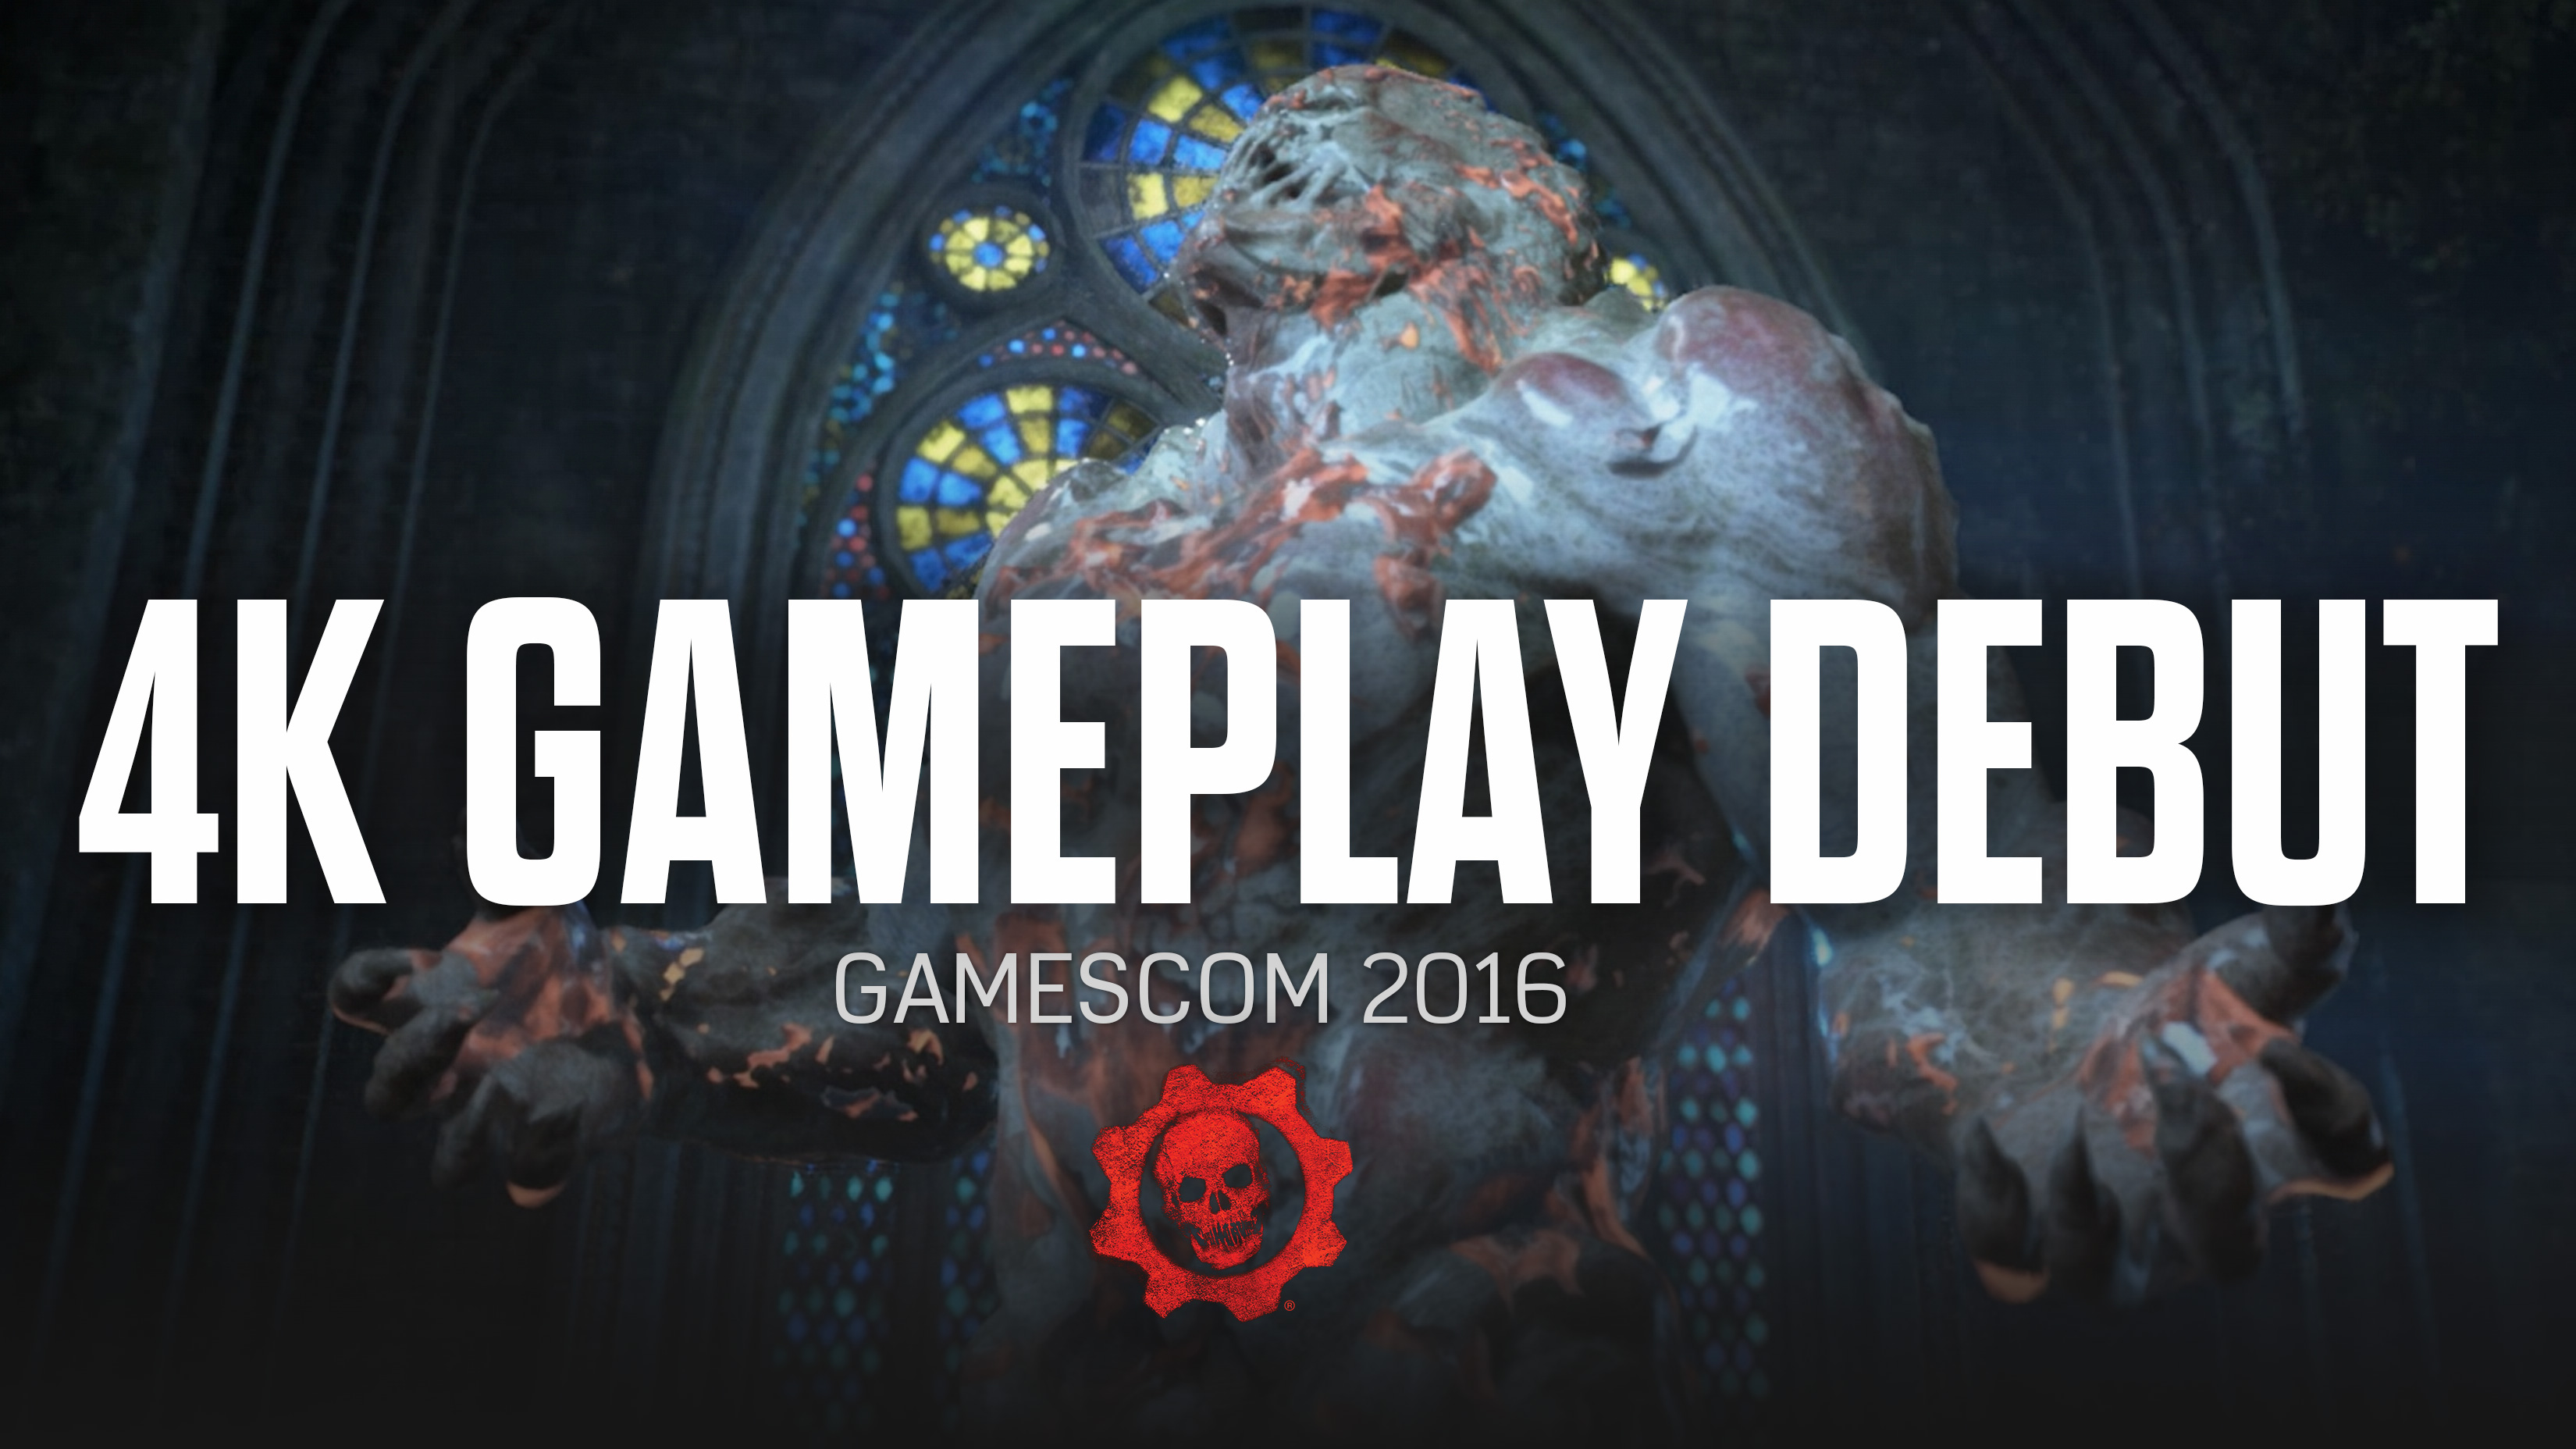 Gears of War 4 - 4K Gameplay Demo